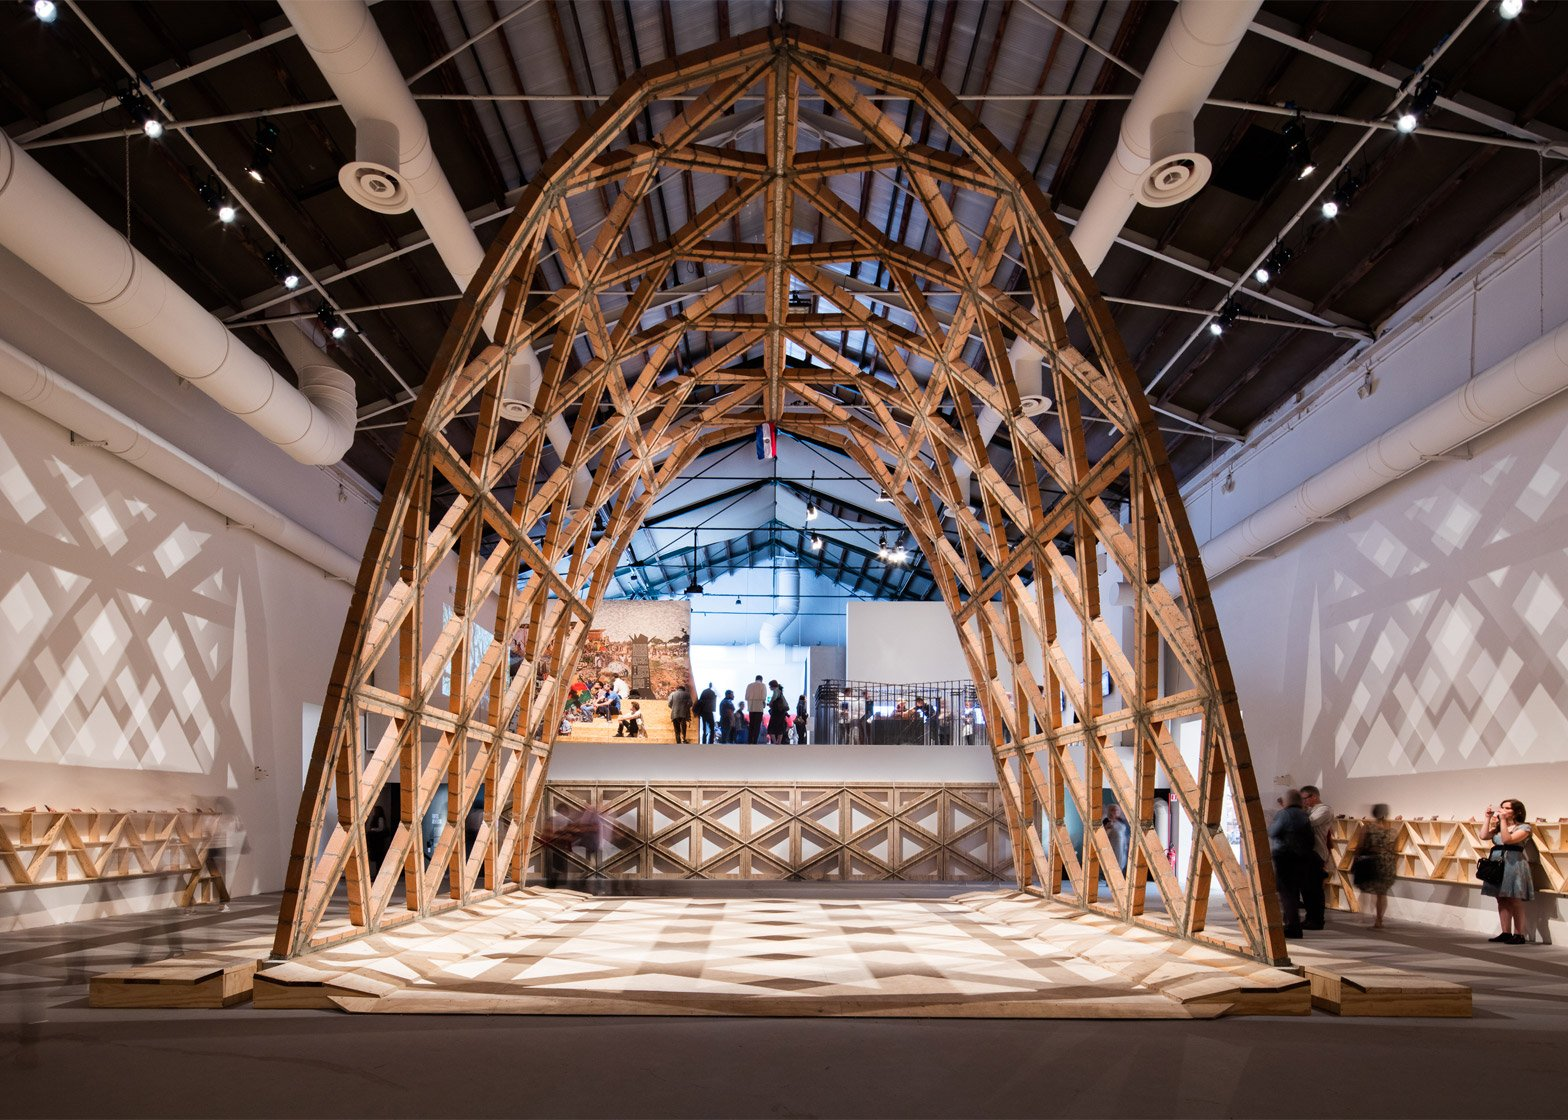 Gabinete de Arquitectura's arch in the Giardini's Central Pavilion for the Venice Architecture Biennale 2016